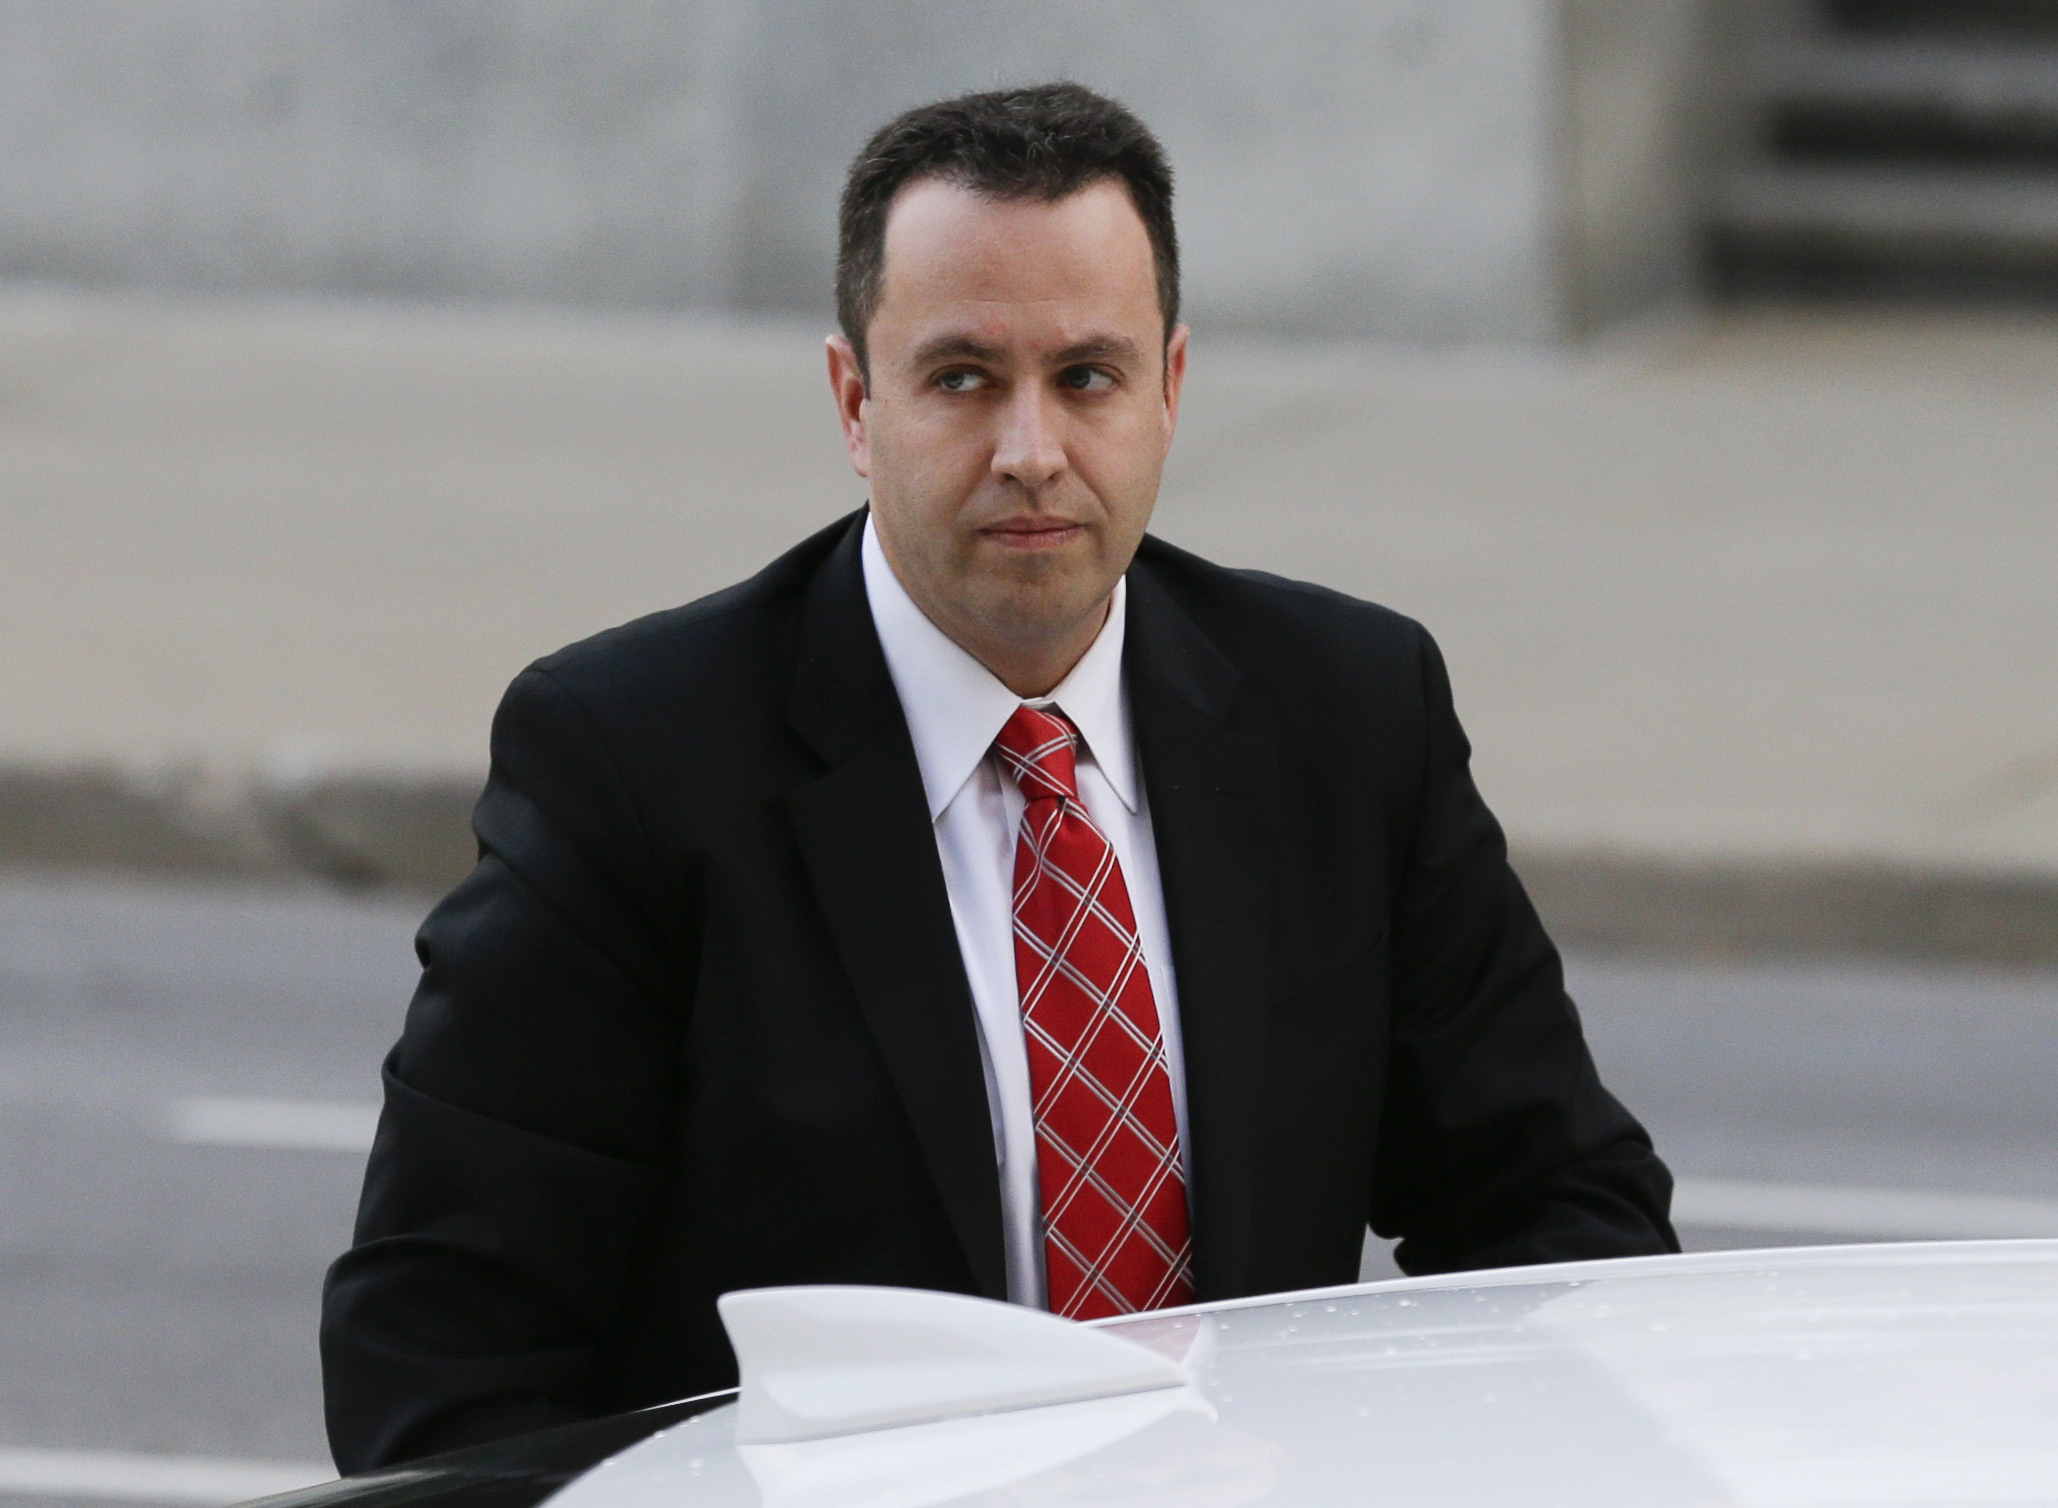 Former Subway pitchman Jared Fogle arrives at the federal courthouse in Indianapolis on Nov. 19, 2015.